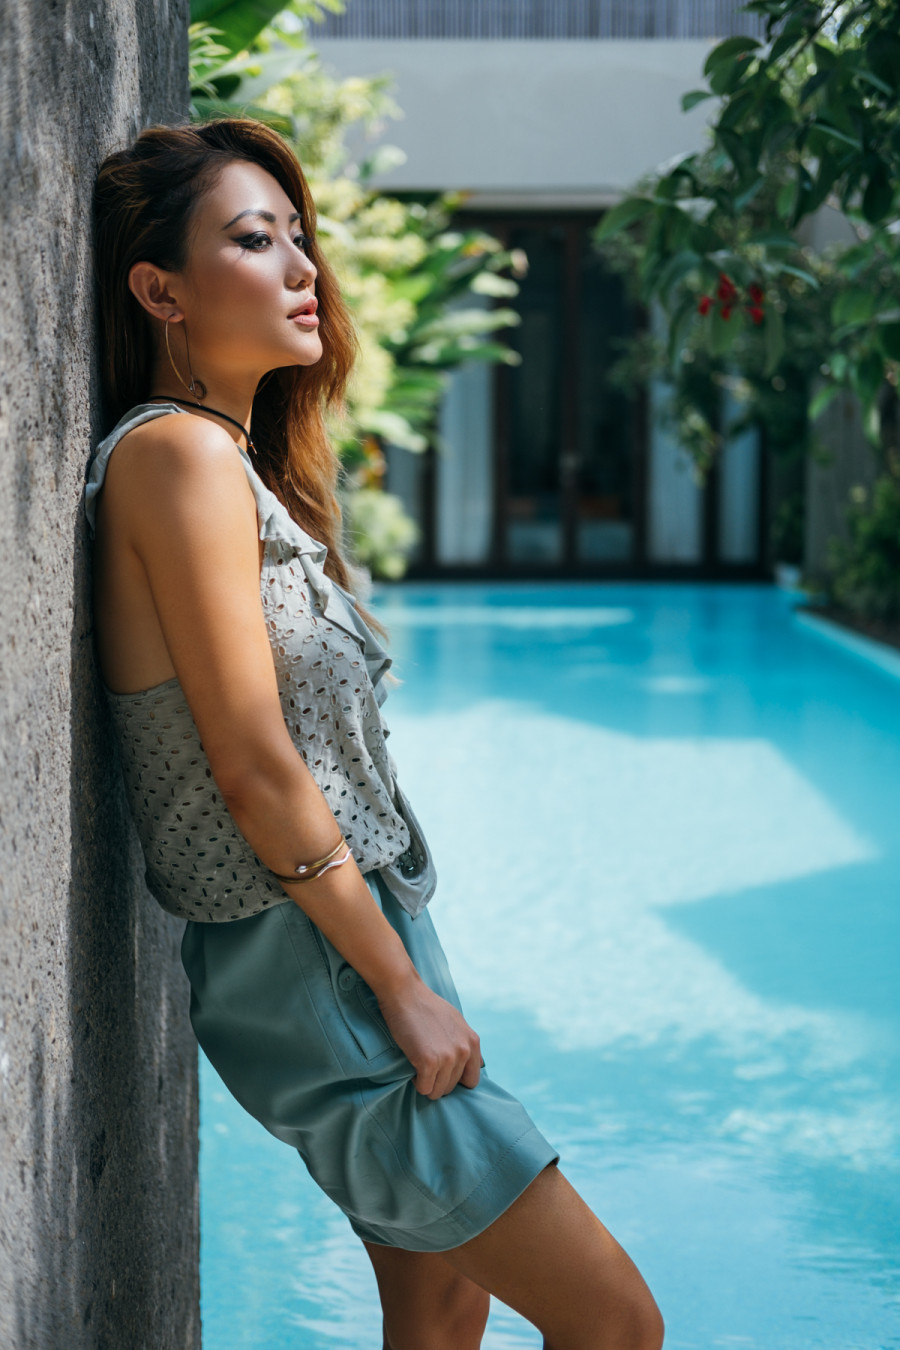 W Retreat Bali Seminyak NOTJESSFASHION, NYC, Top Fashion Blogger, Lifestyle Blogger, Travel Blogger